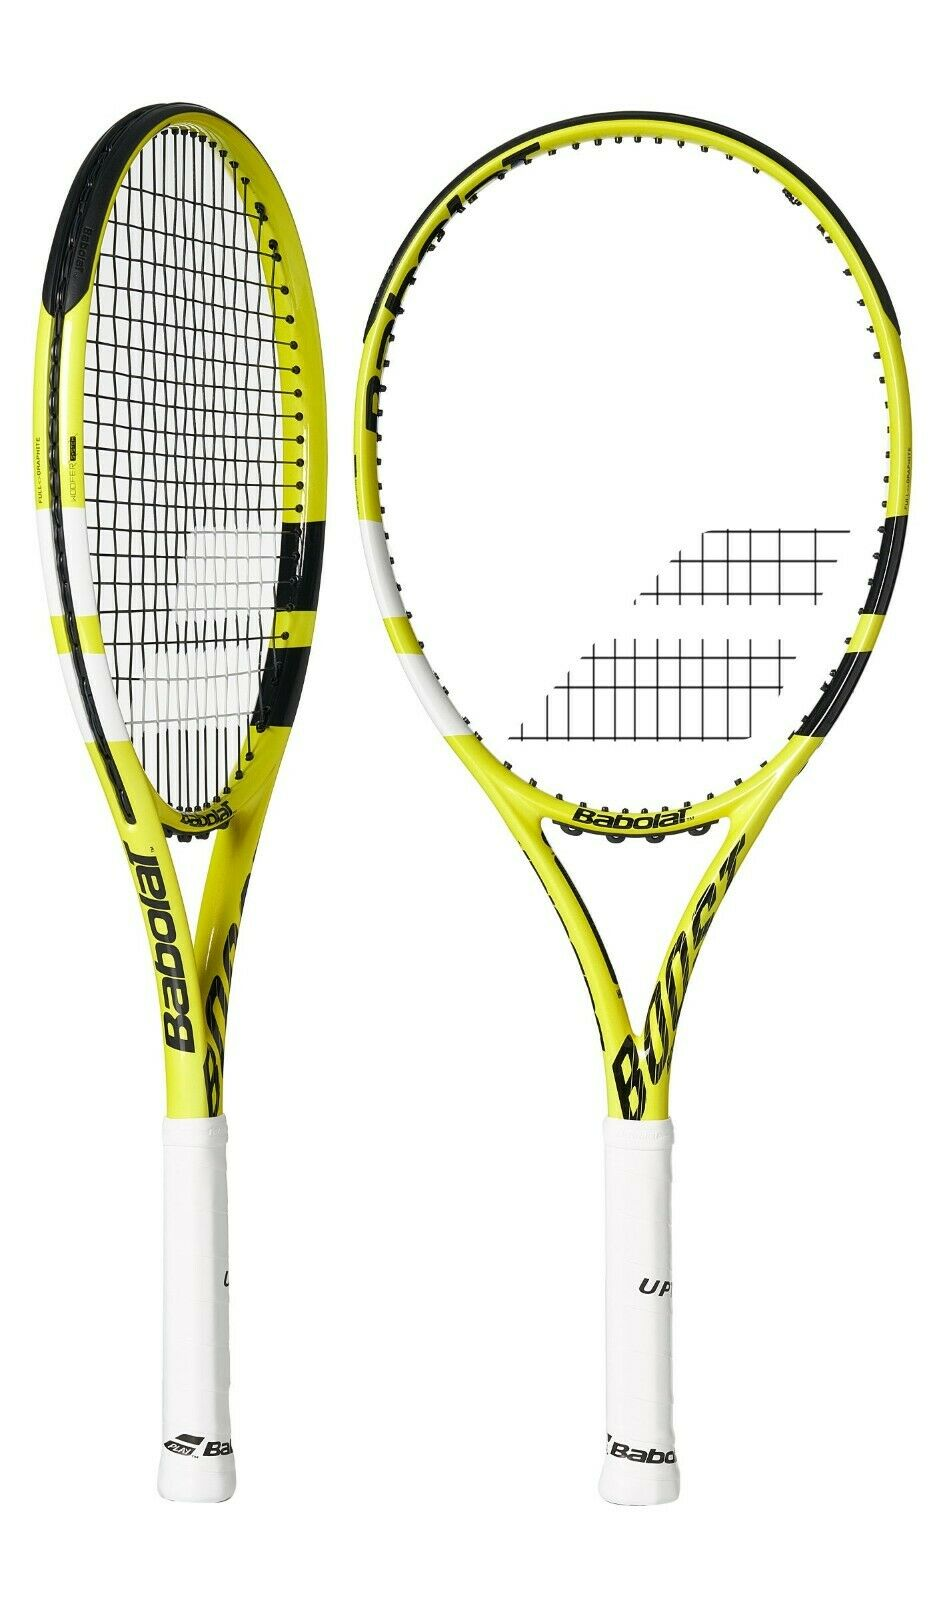 *NEW* 2020 BABOLAT BOOST A TENNIS RACQUET  STRUNG. FULL COVE